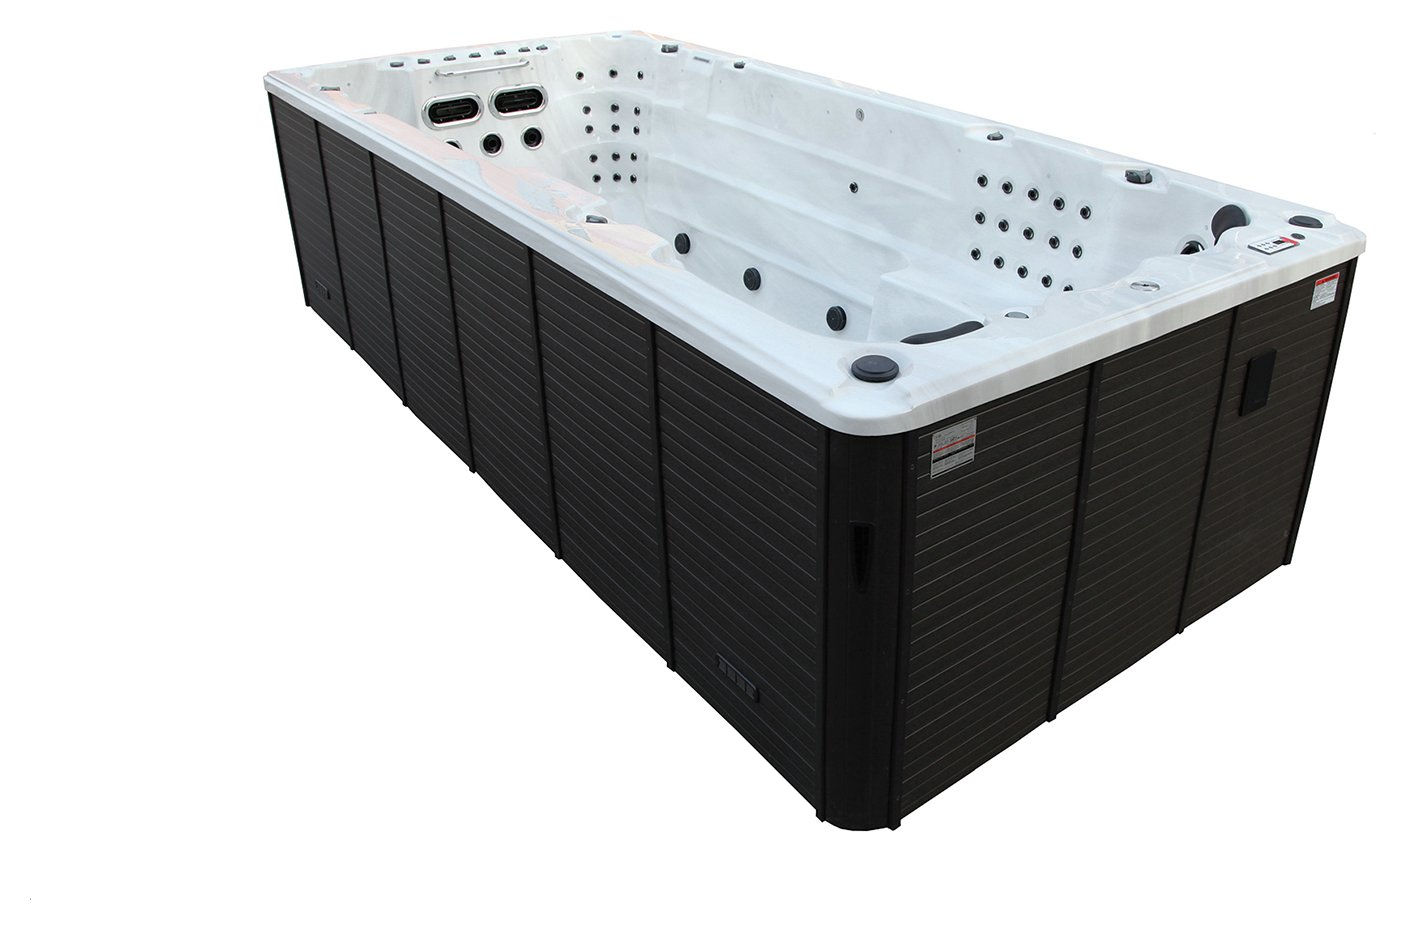 Canadian Spa Co. St Lawrence Deluxe 16ft 71 Jet Swim Hot Tub at Argos